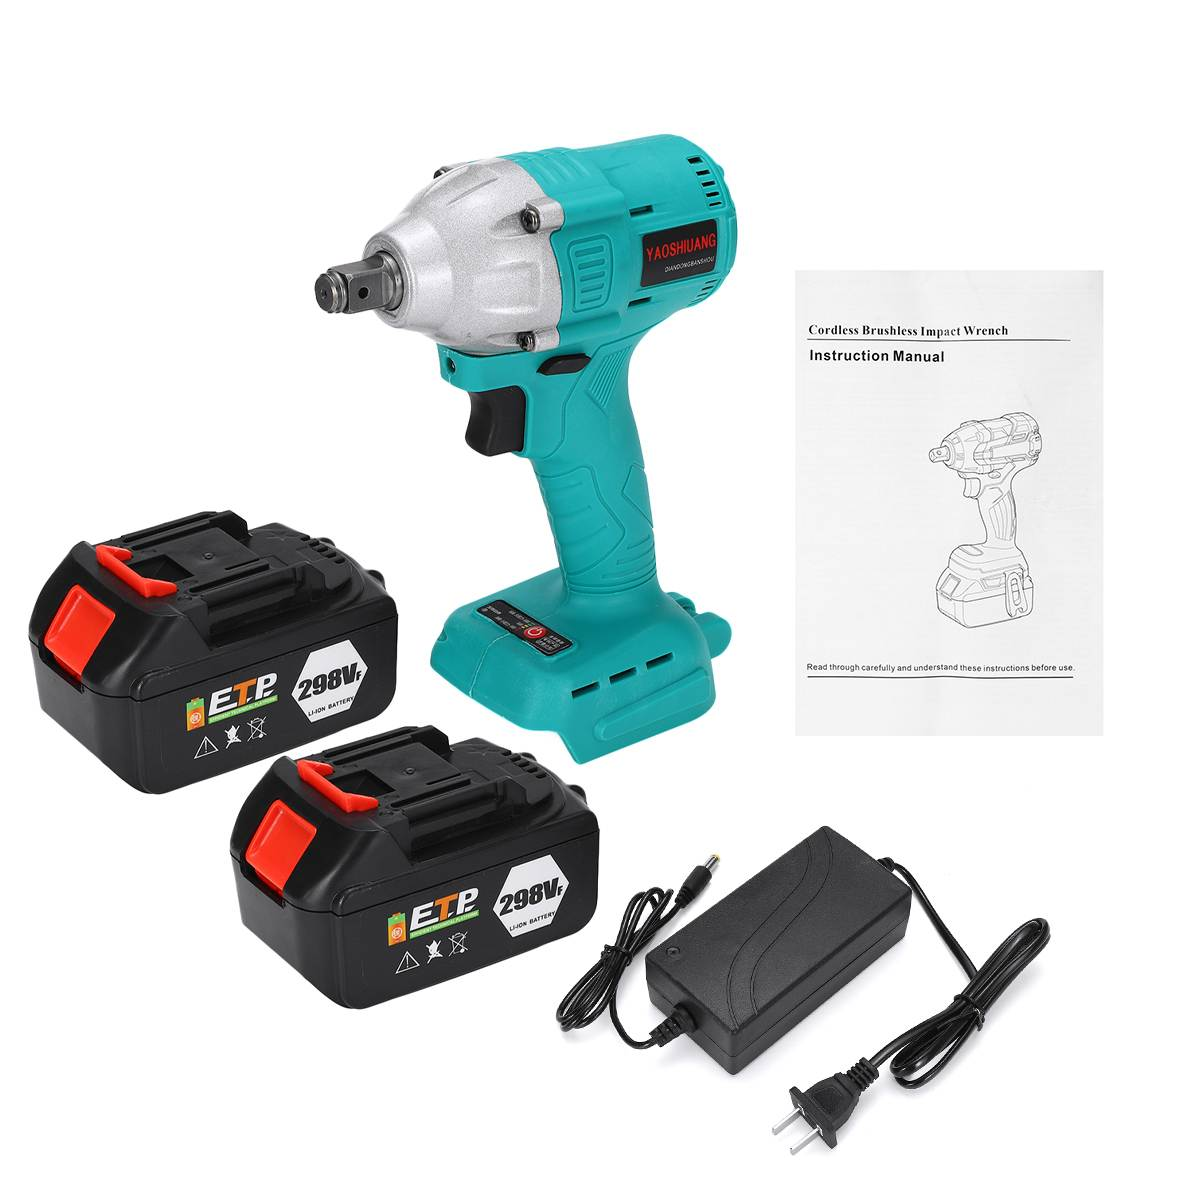 2 Battery 22800mAh Electric Wrenches 298VF 650NM 1/2'' Electric Impact Wrench Brushless Cordless Impact Wrench Power Tool